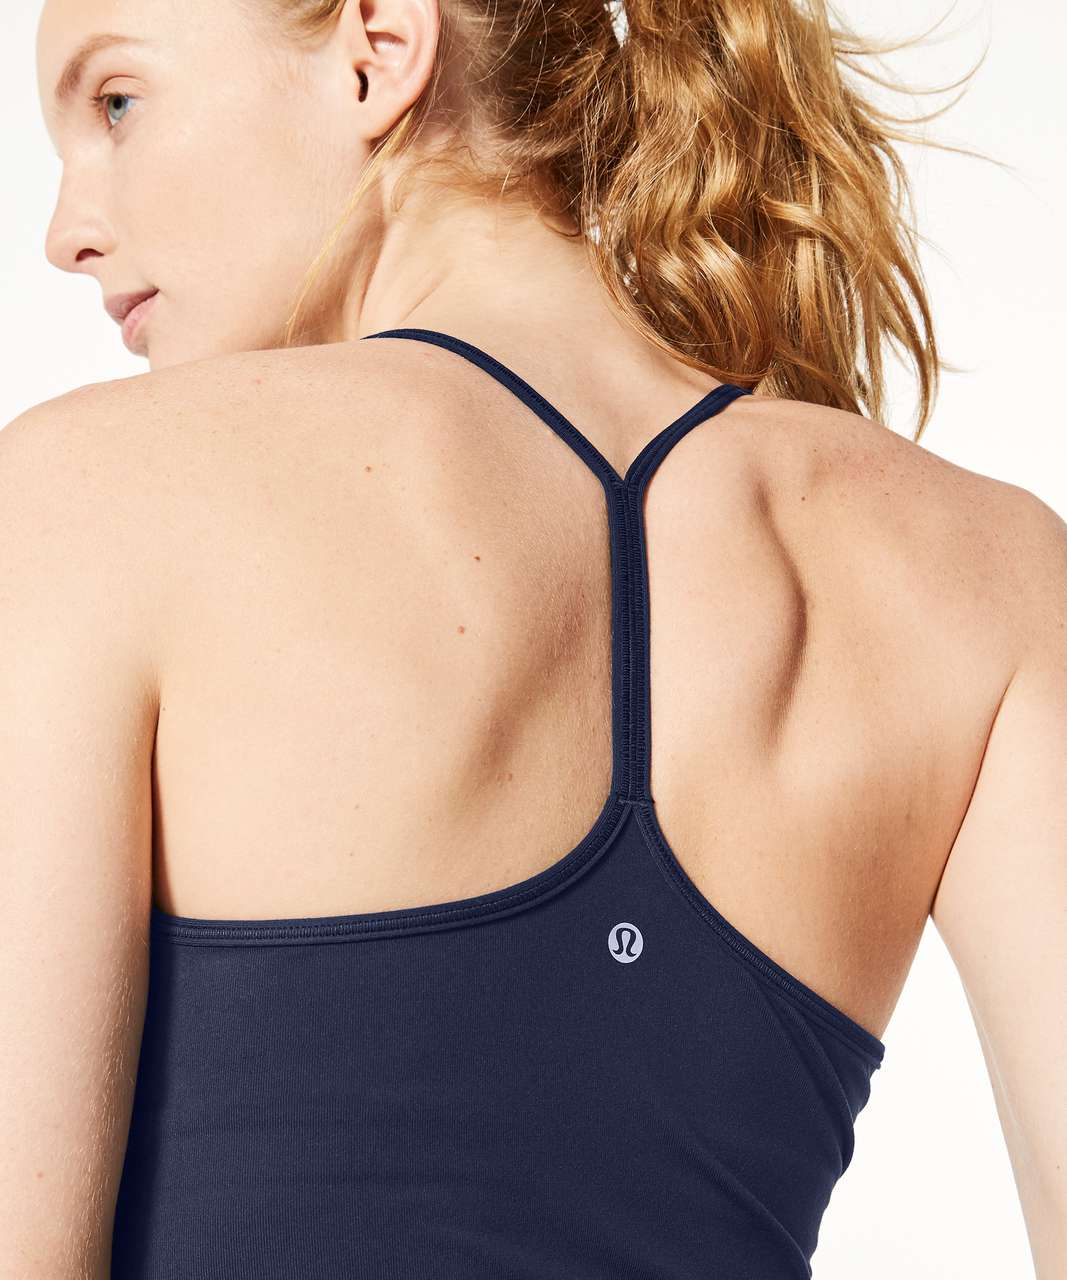 Lululemon Power Pose Tank *Light Support For A/B Cup - Midnight Navy